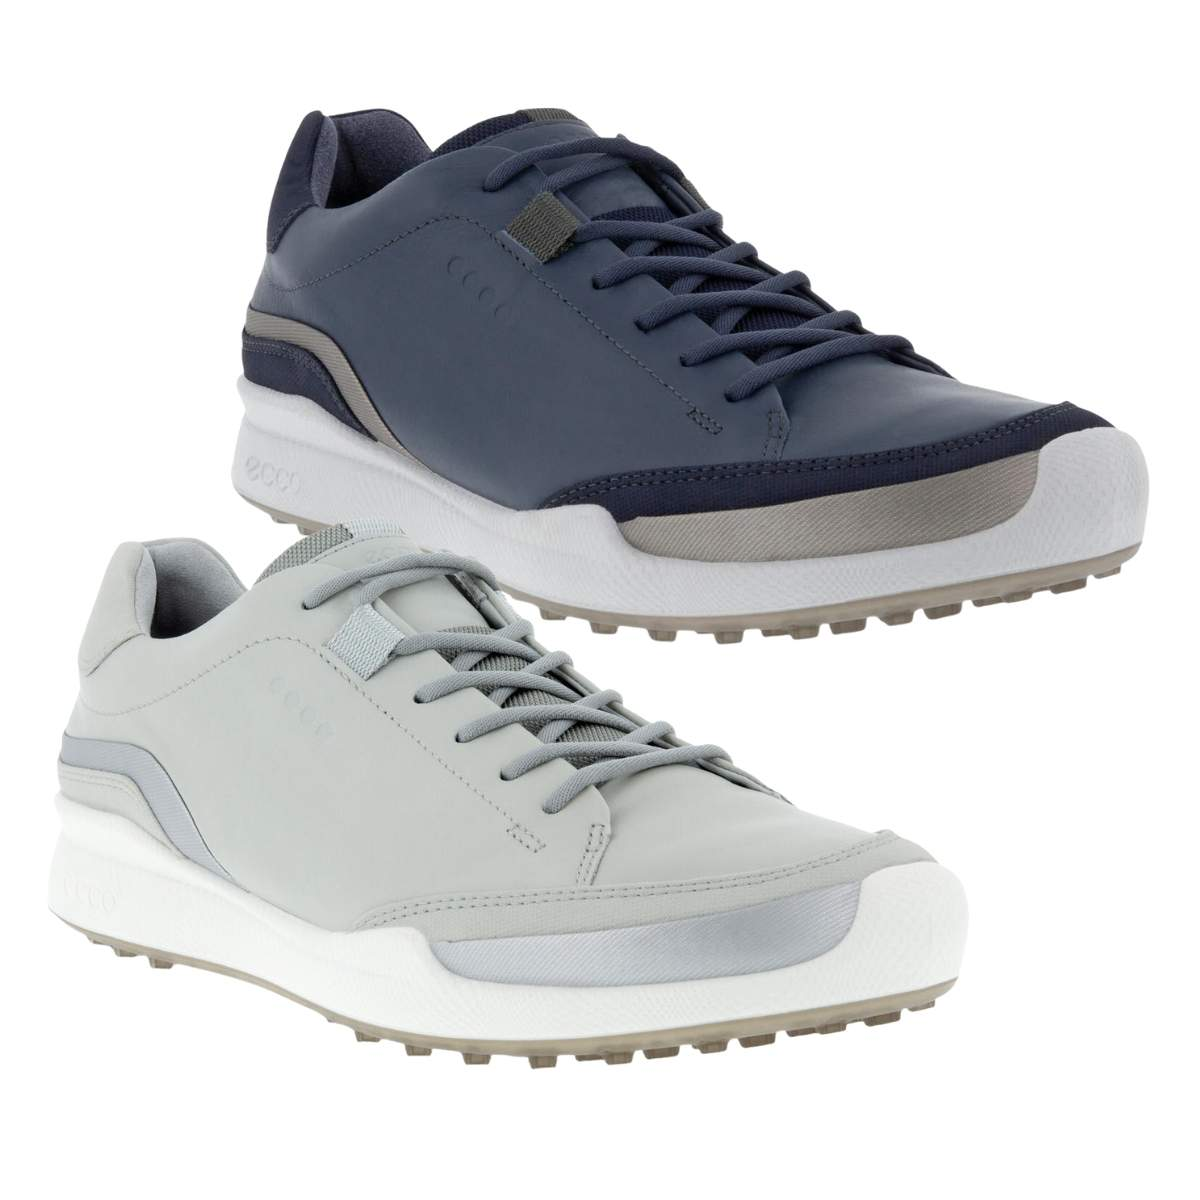 ECCO Men's Biom Hybrid Laced Golf Shoe